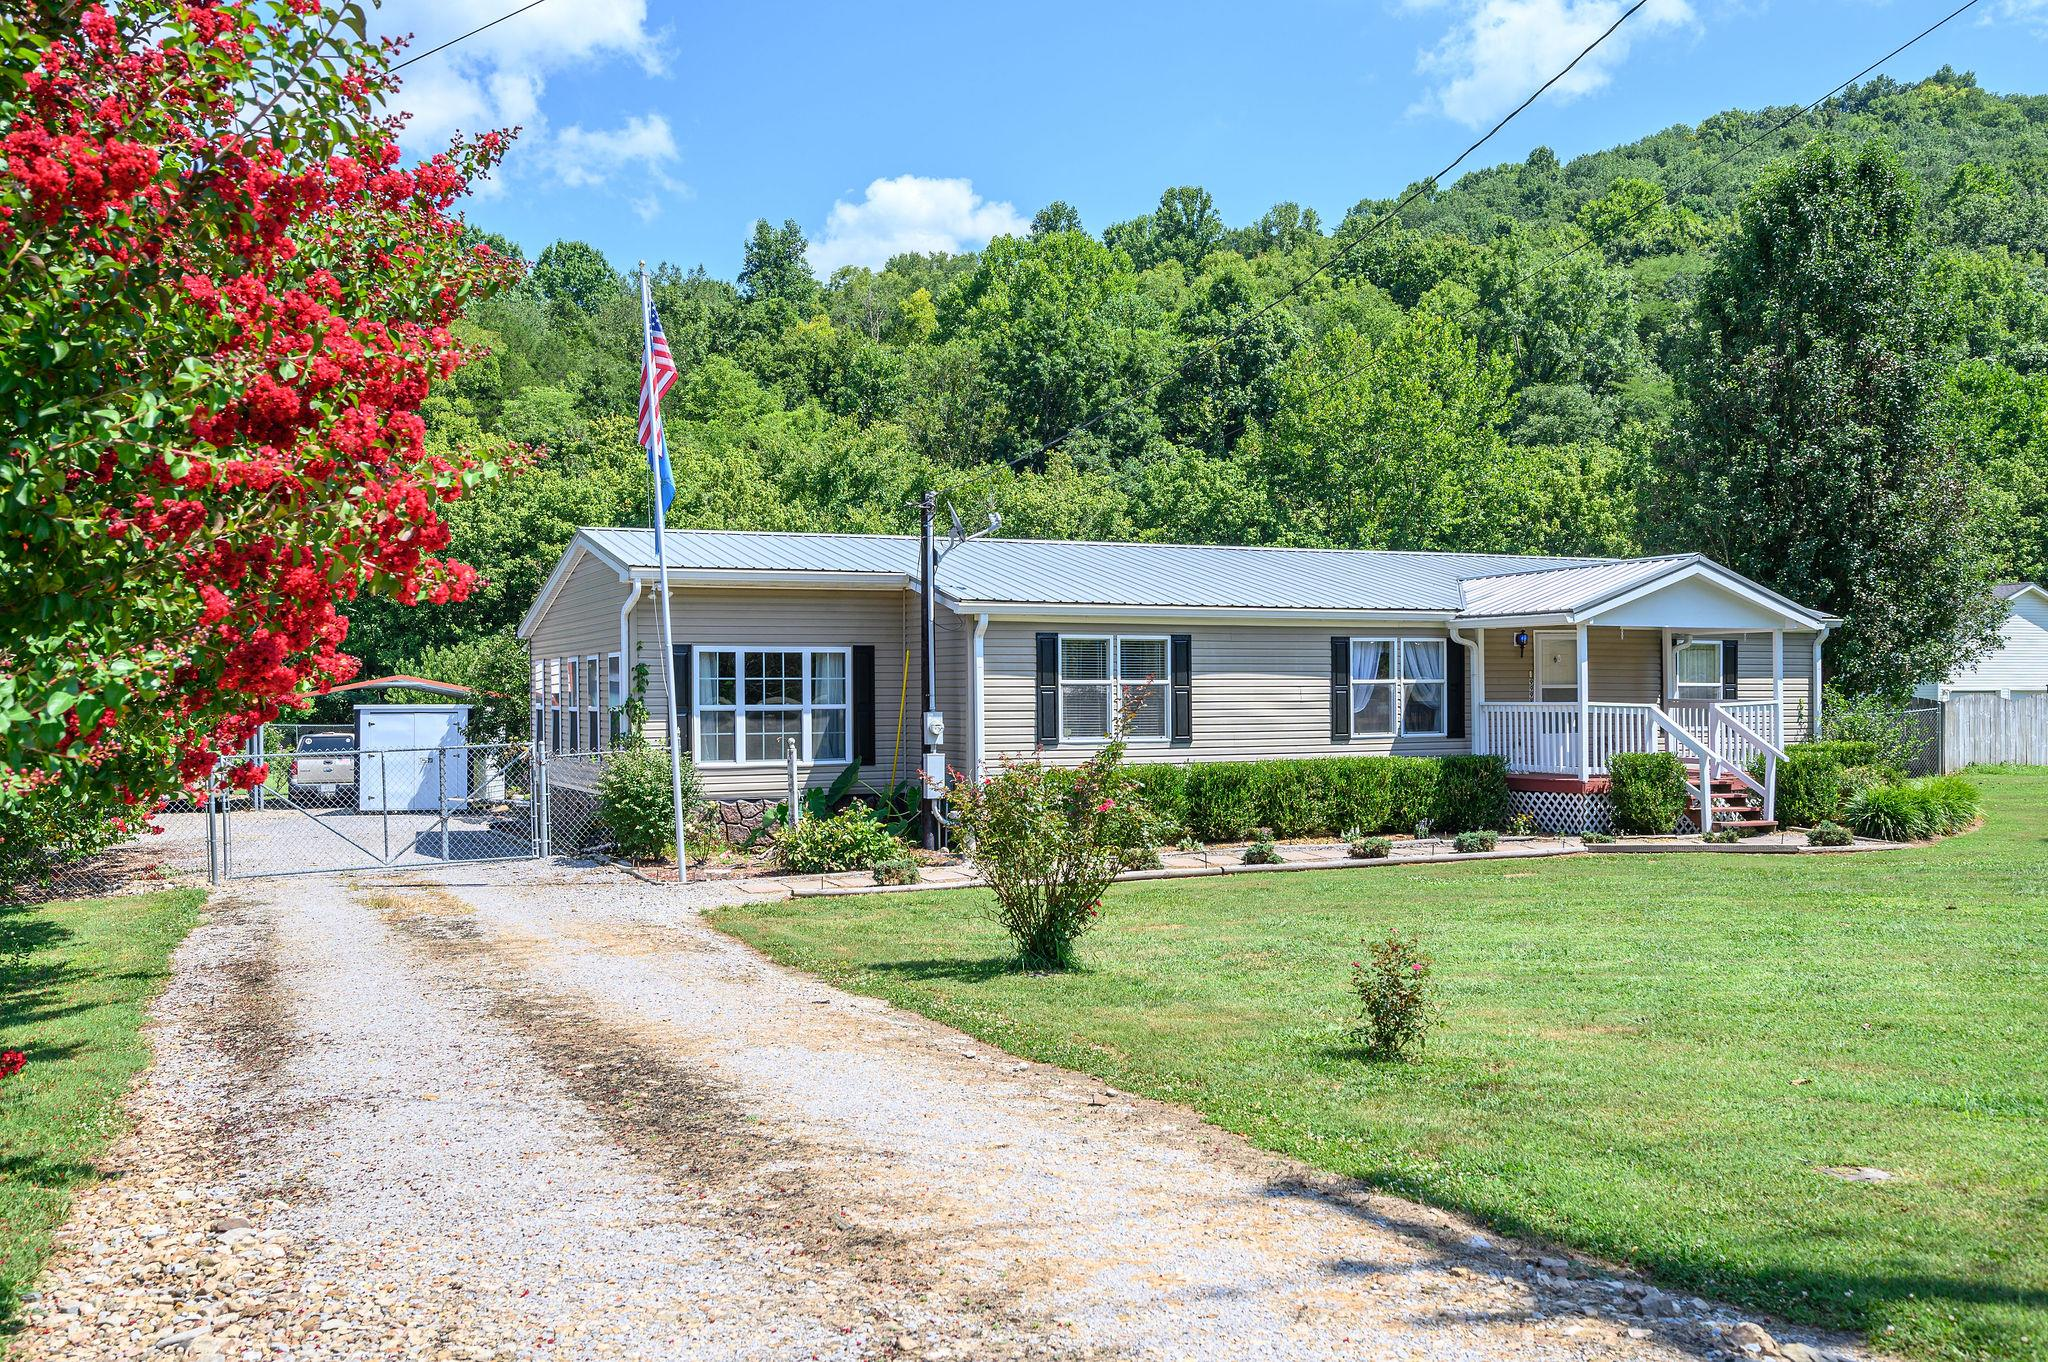 9998 Gassaway Rd, Woodbury, TN 37190 - Woodbury, TN real estate listing